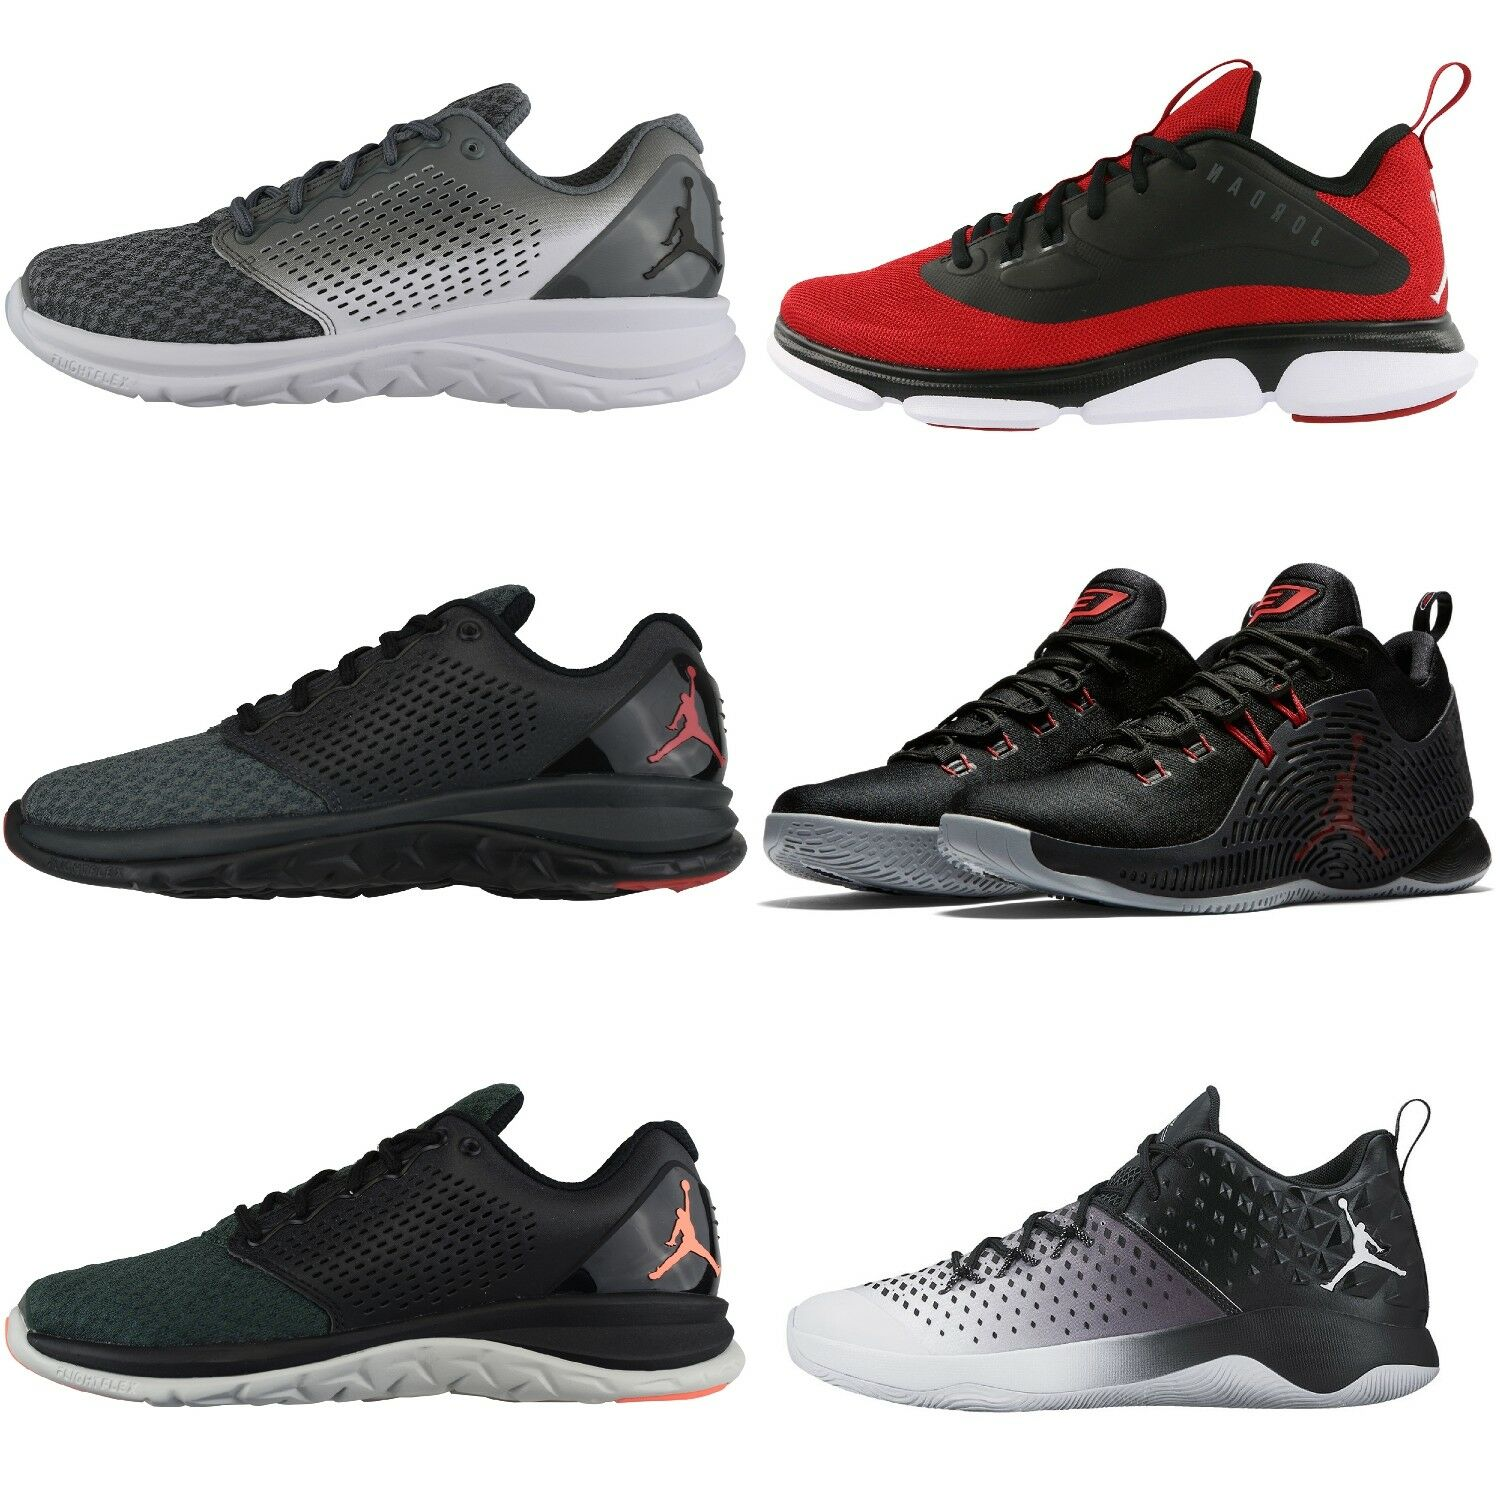 Nike Jordan CP3.X   Trainer ST Winter   Impact TR   Extra Fly Basketballschuh